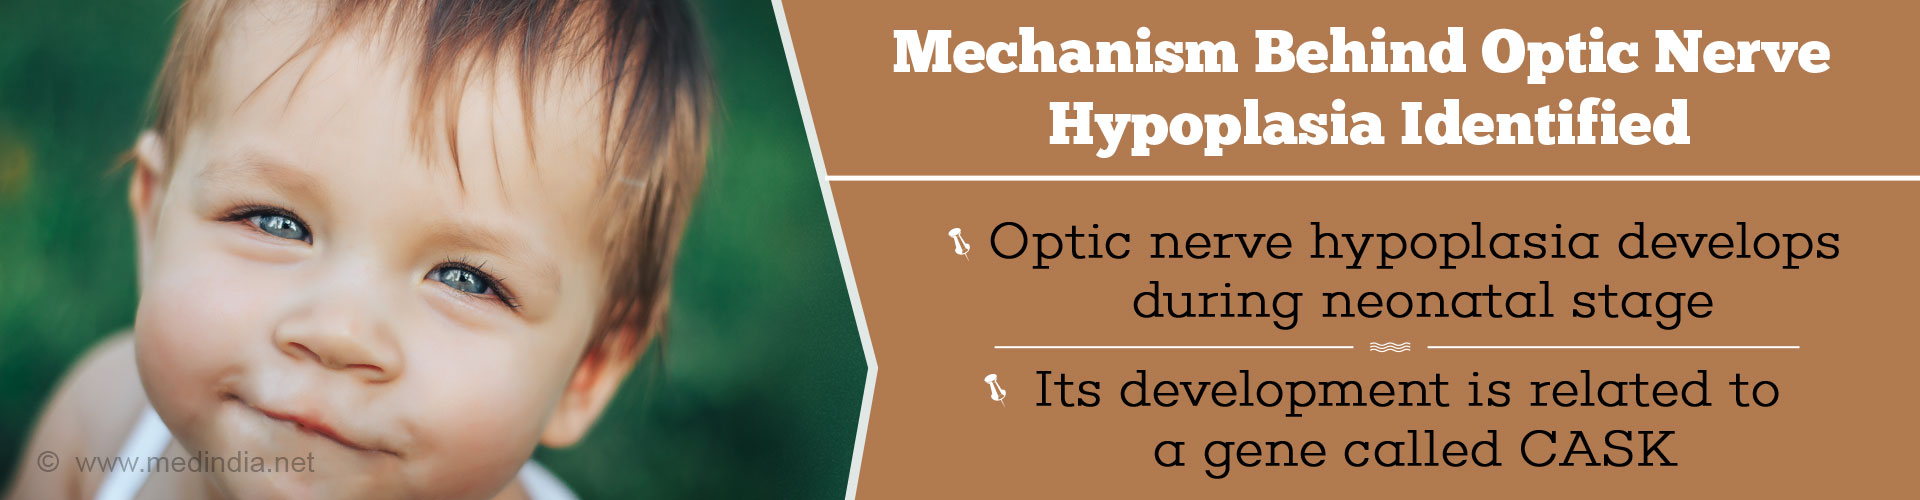 Mechanism Behind Optic Nerve Hypoplasia Revealed